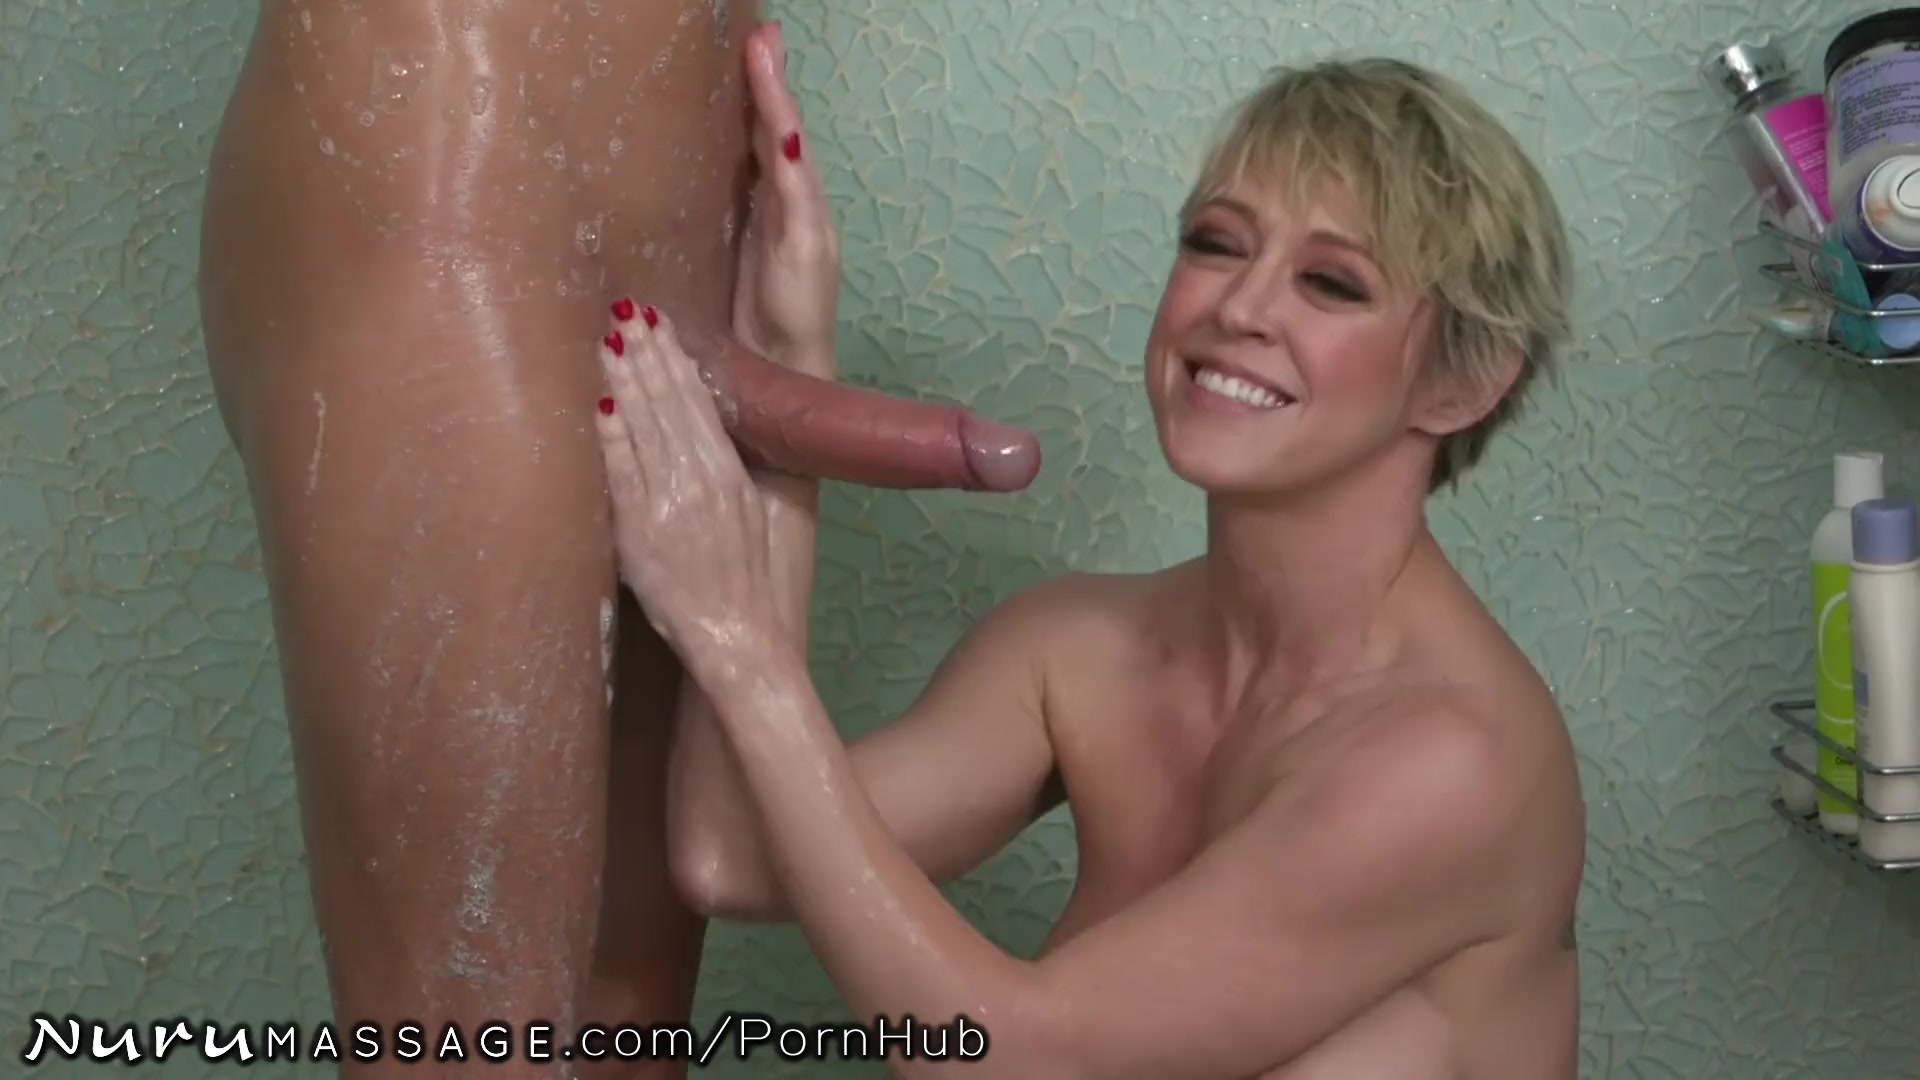 Preview 6 of Mature Mommy Joins In Stepson's Nuru Massage